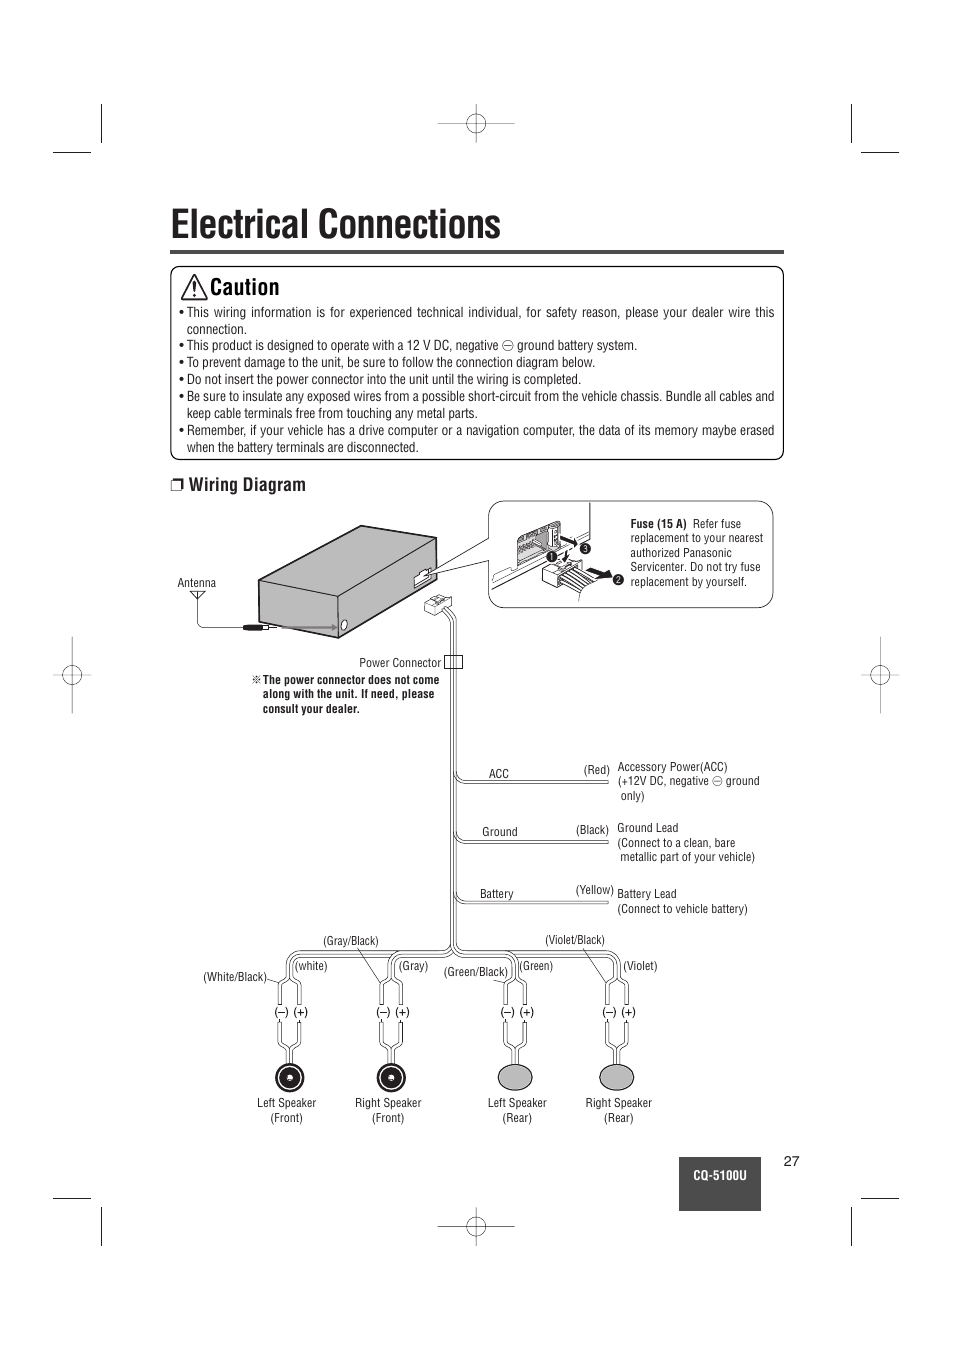 hight resolution of radio wiring diagram for panasonic cq 5300u wiring diagram panasonic cq 5100u wiring diagramradio wiring diagram